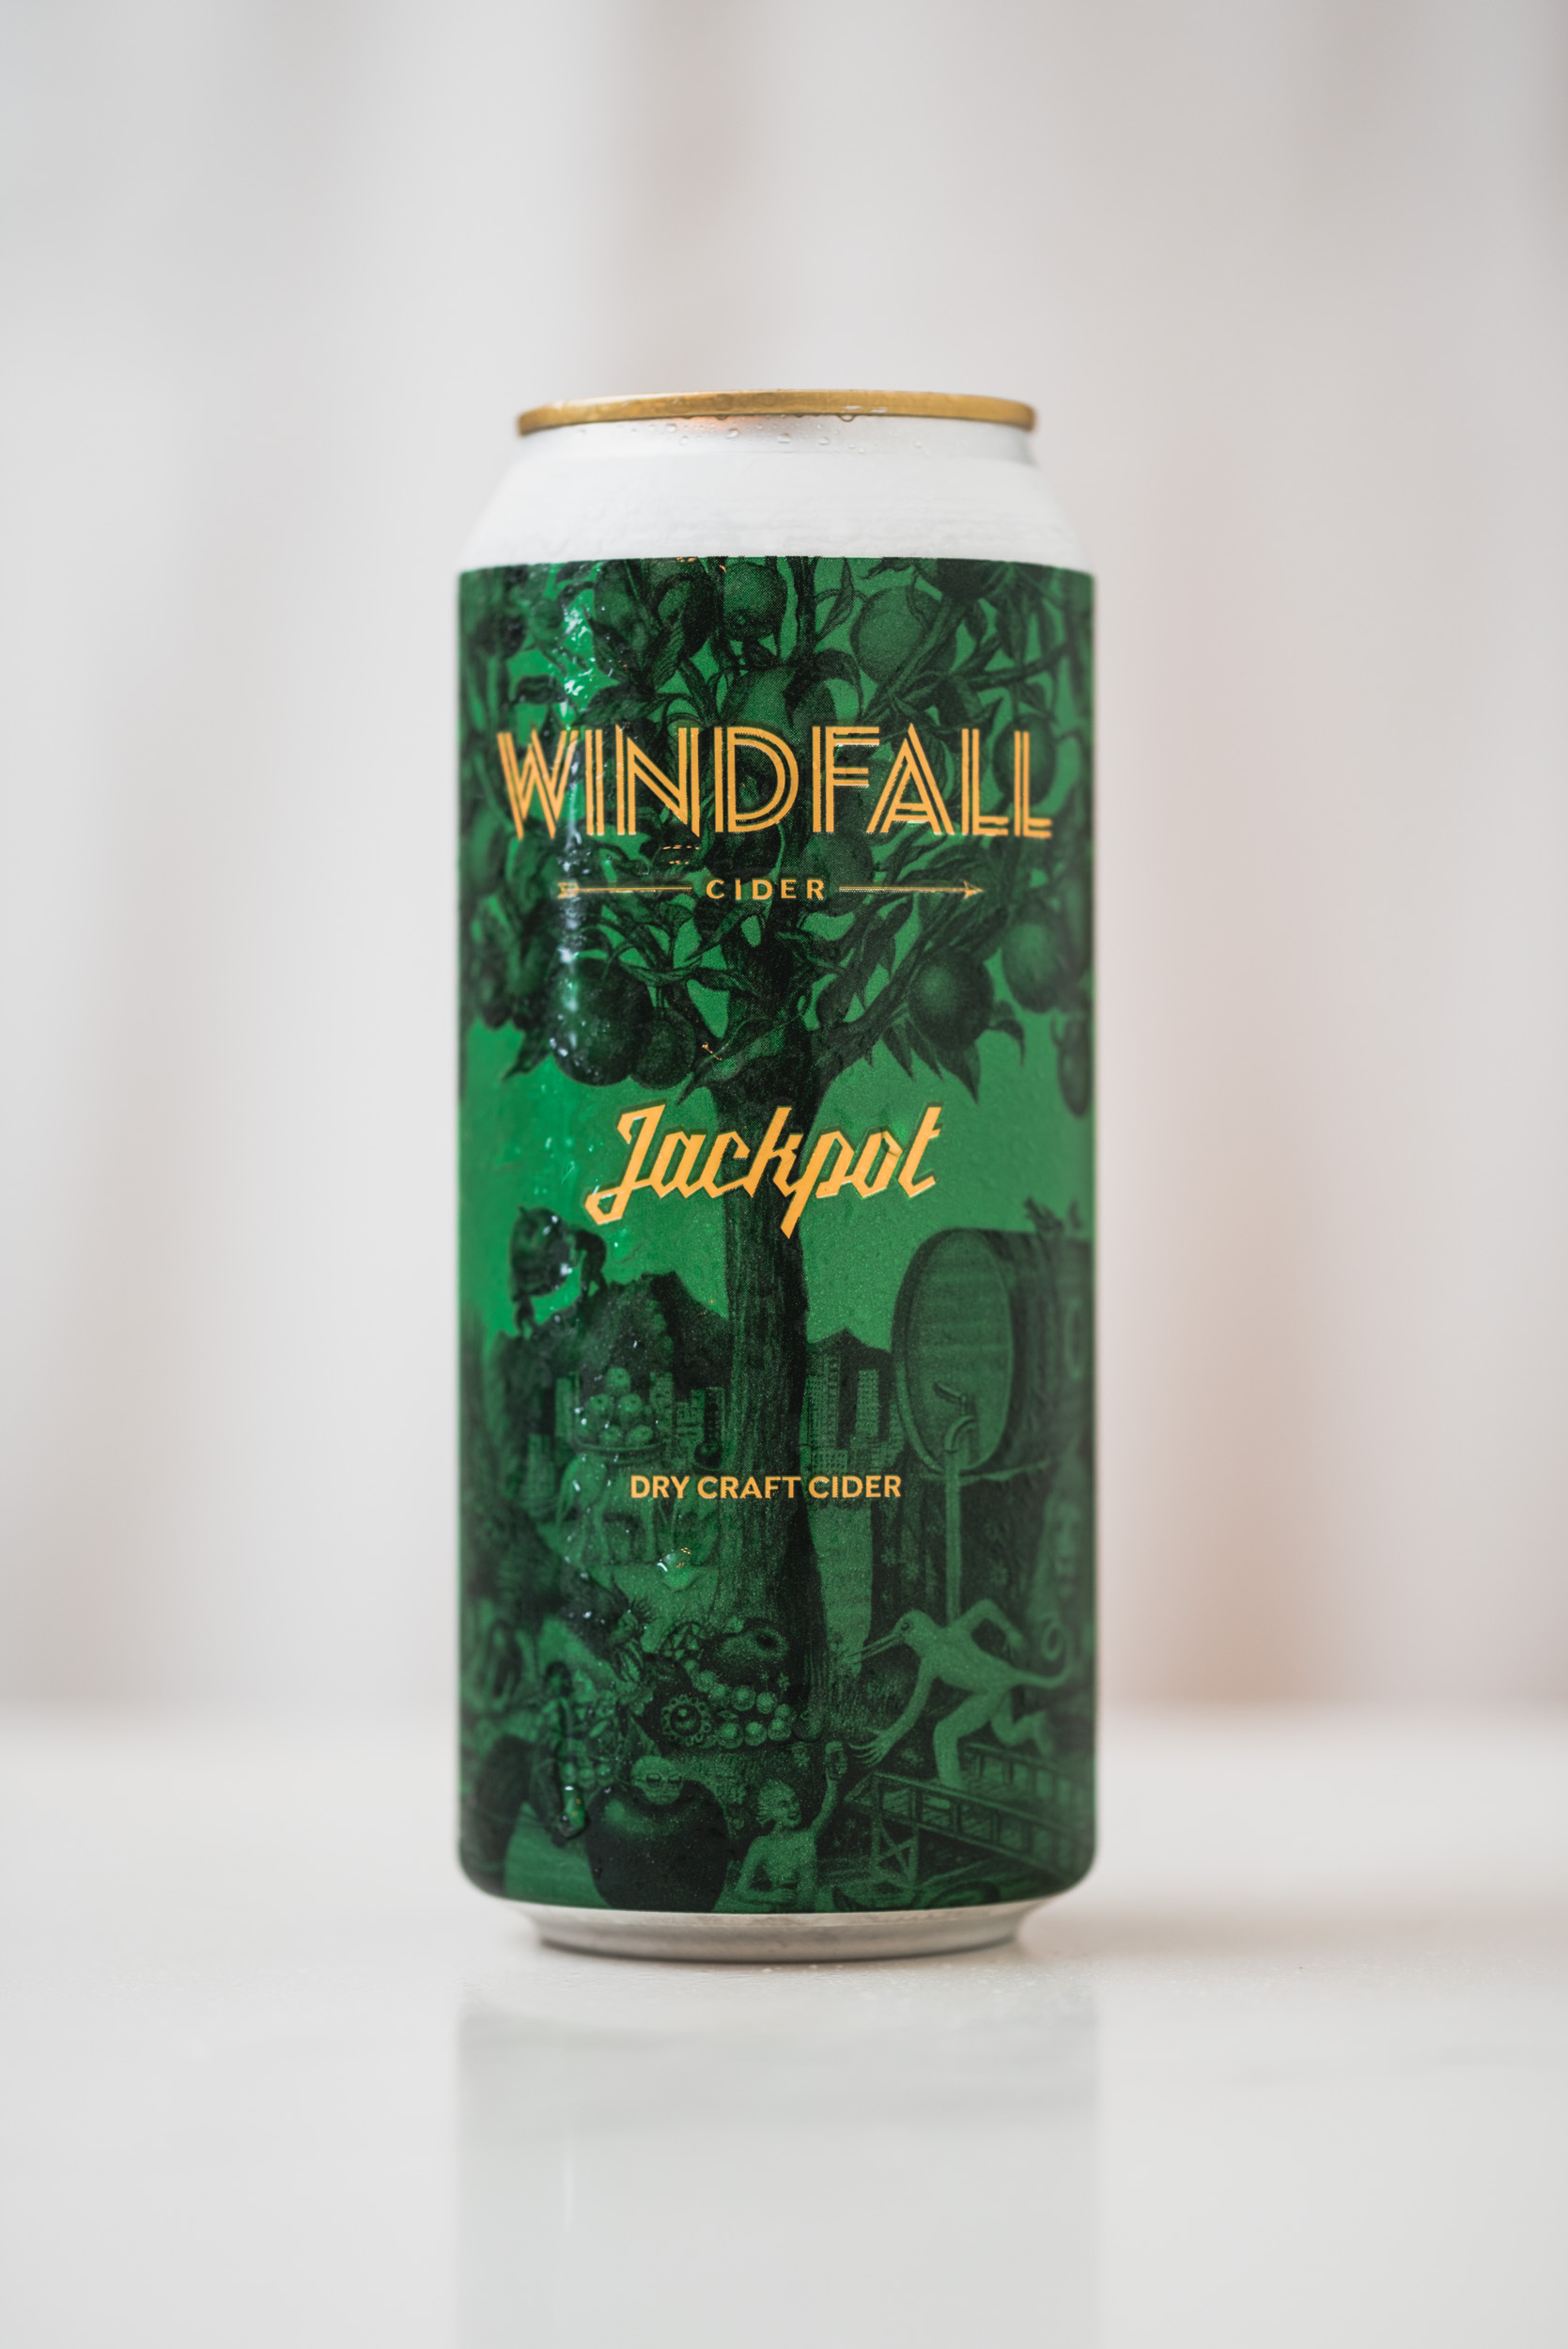 Windfall Jackpot dry craft cider vanpours Luke Mikler photography